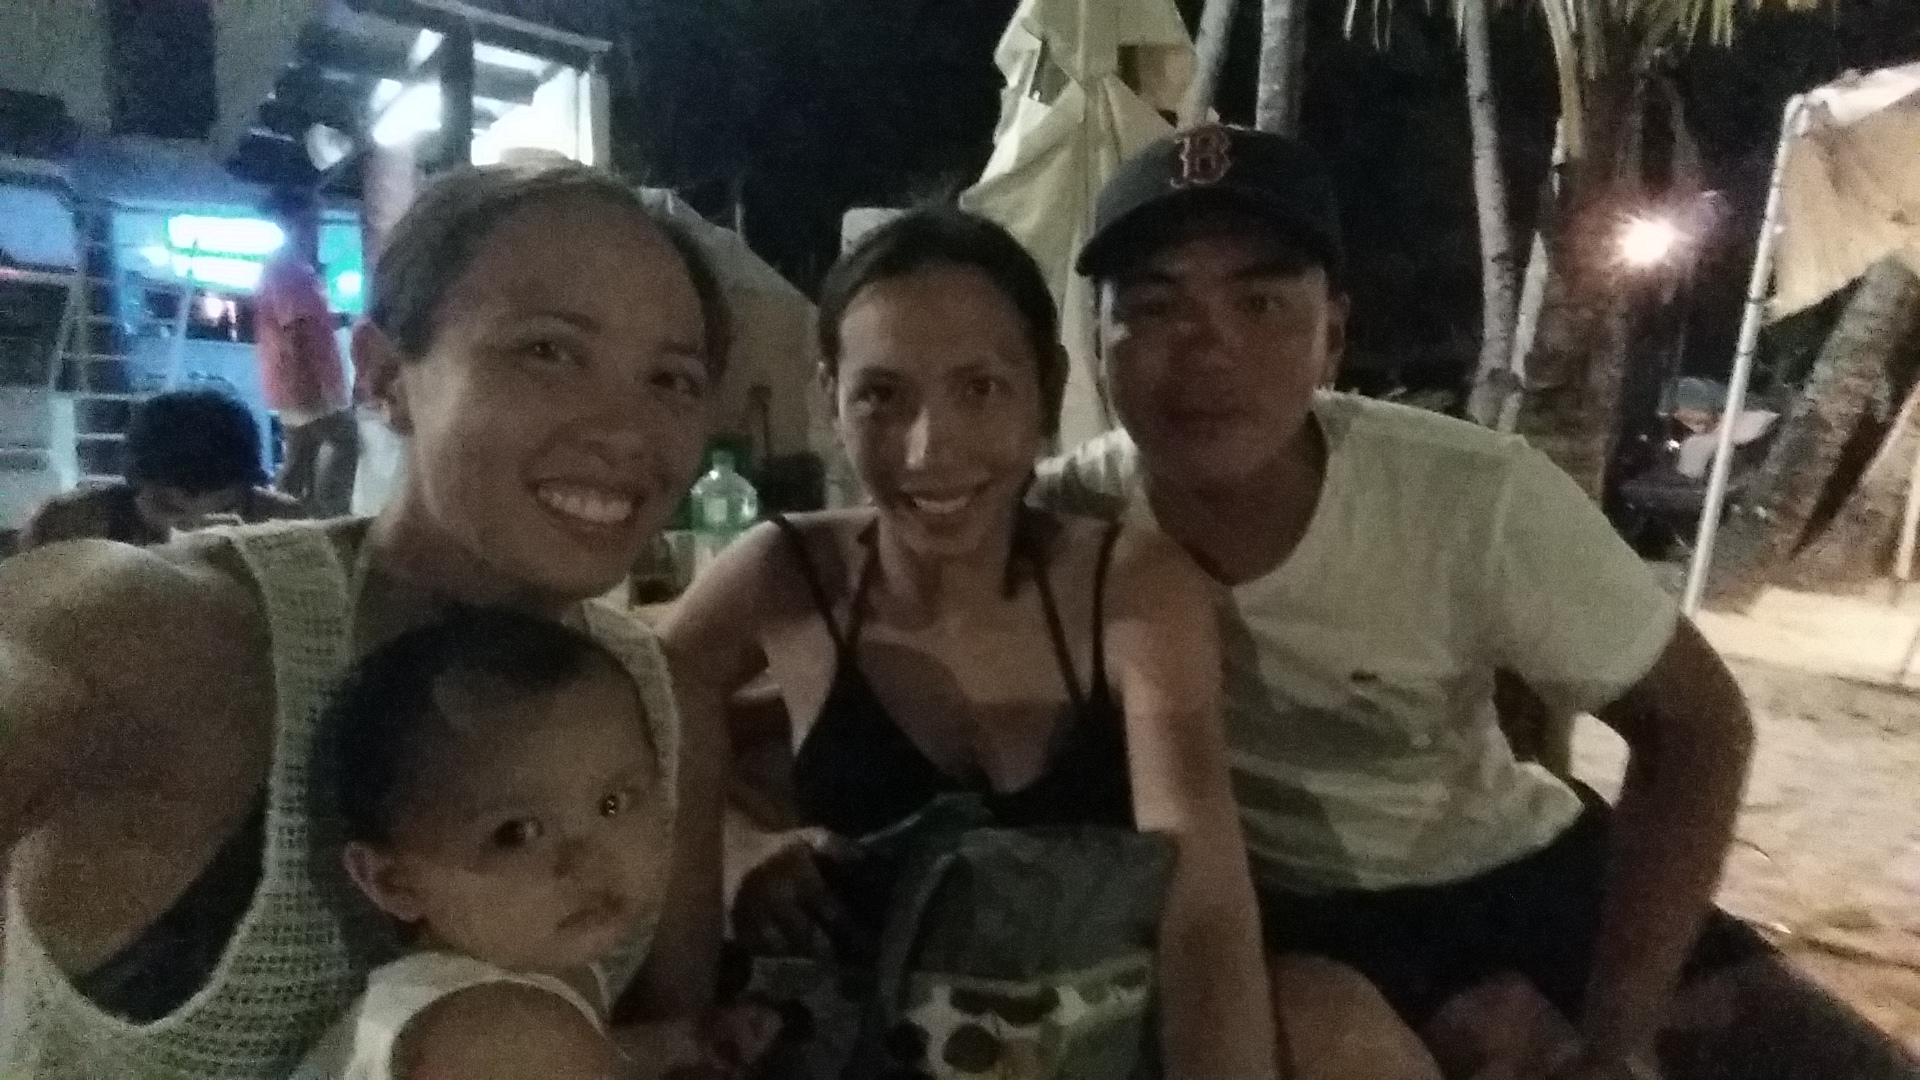 Boracay March 2015